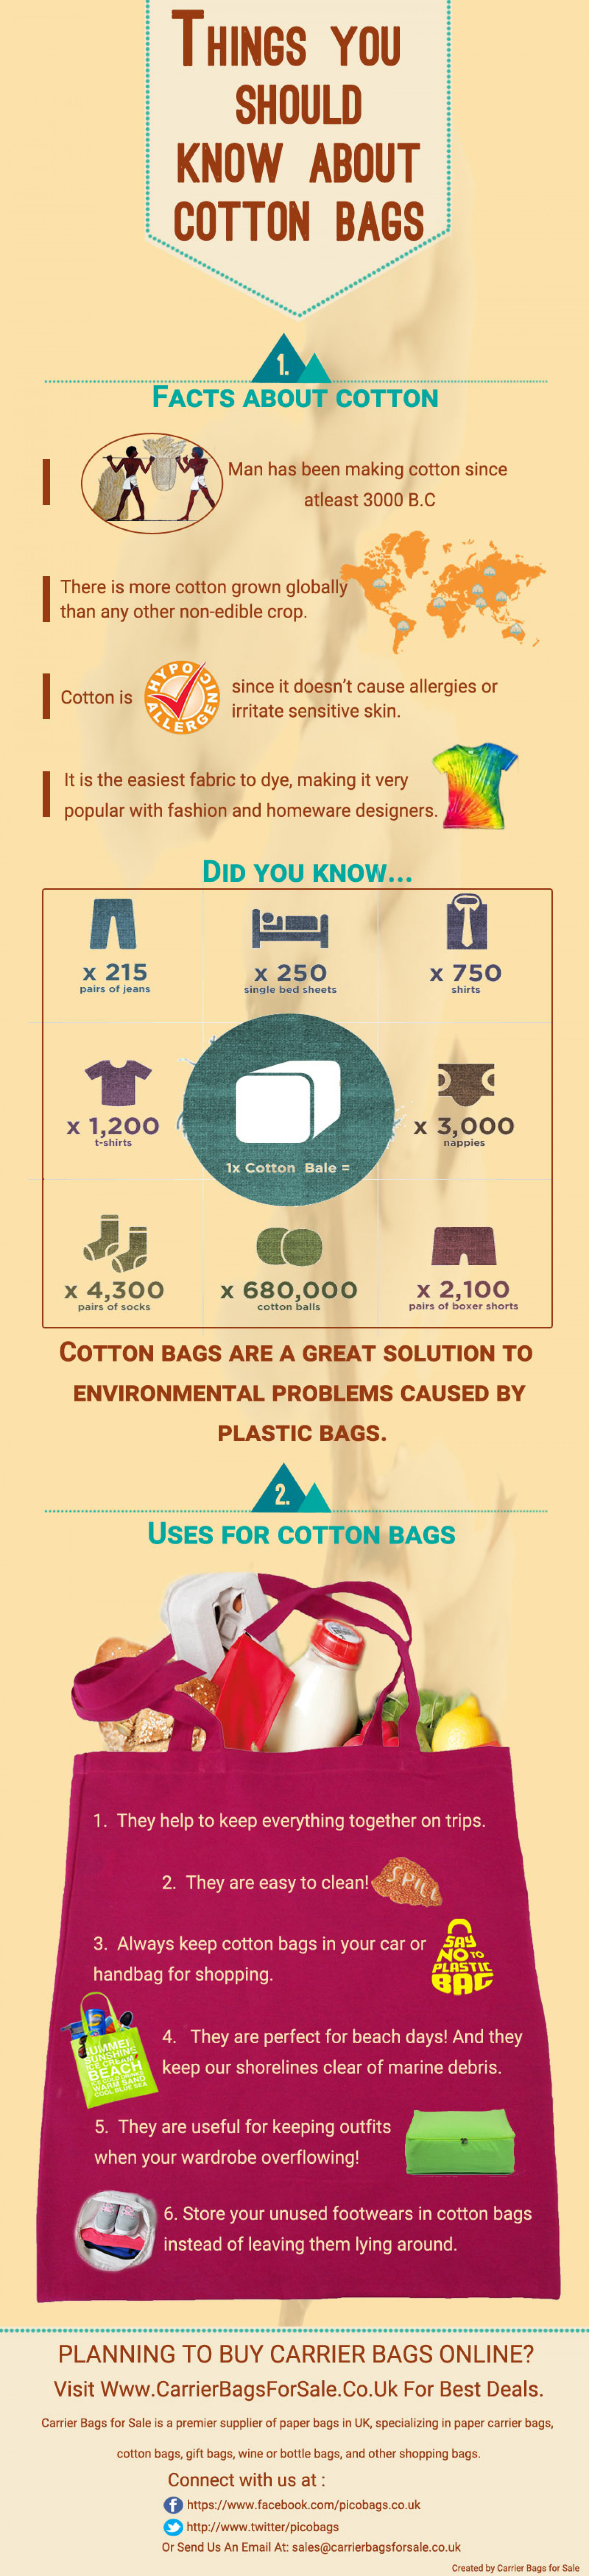 Things You Should know About Cotton Bags Infographic